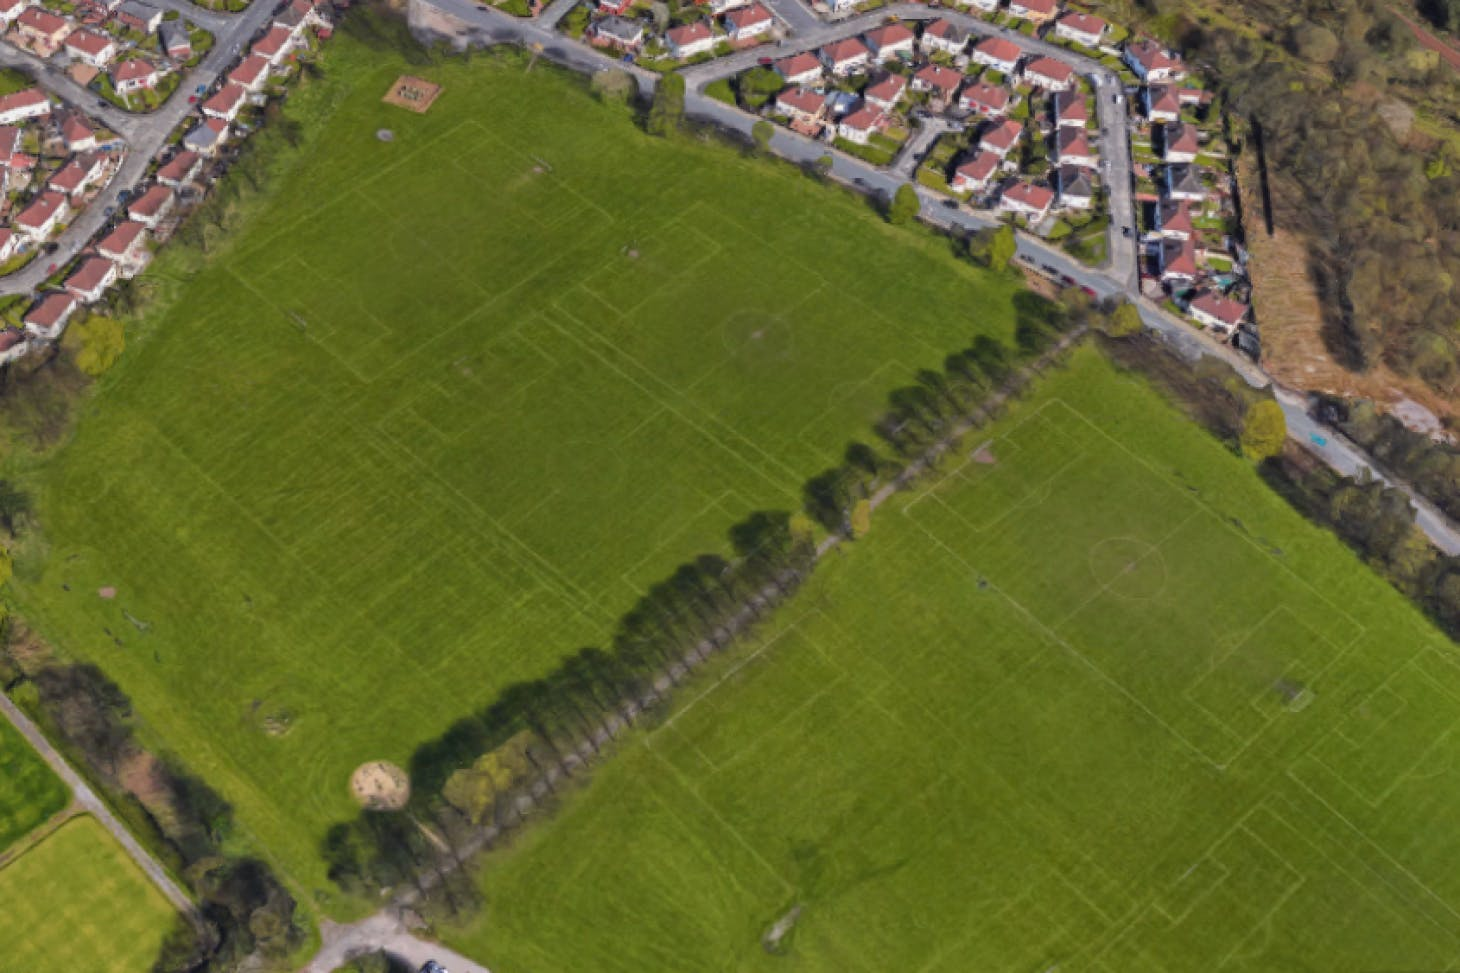 Bolton Road Playing Fields 11 a side | Grass football pitch